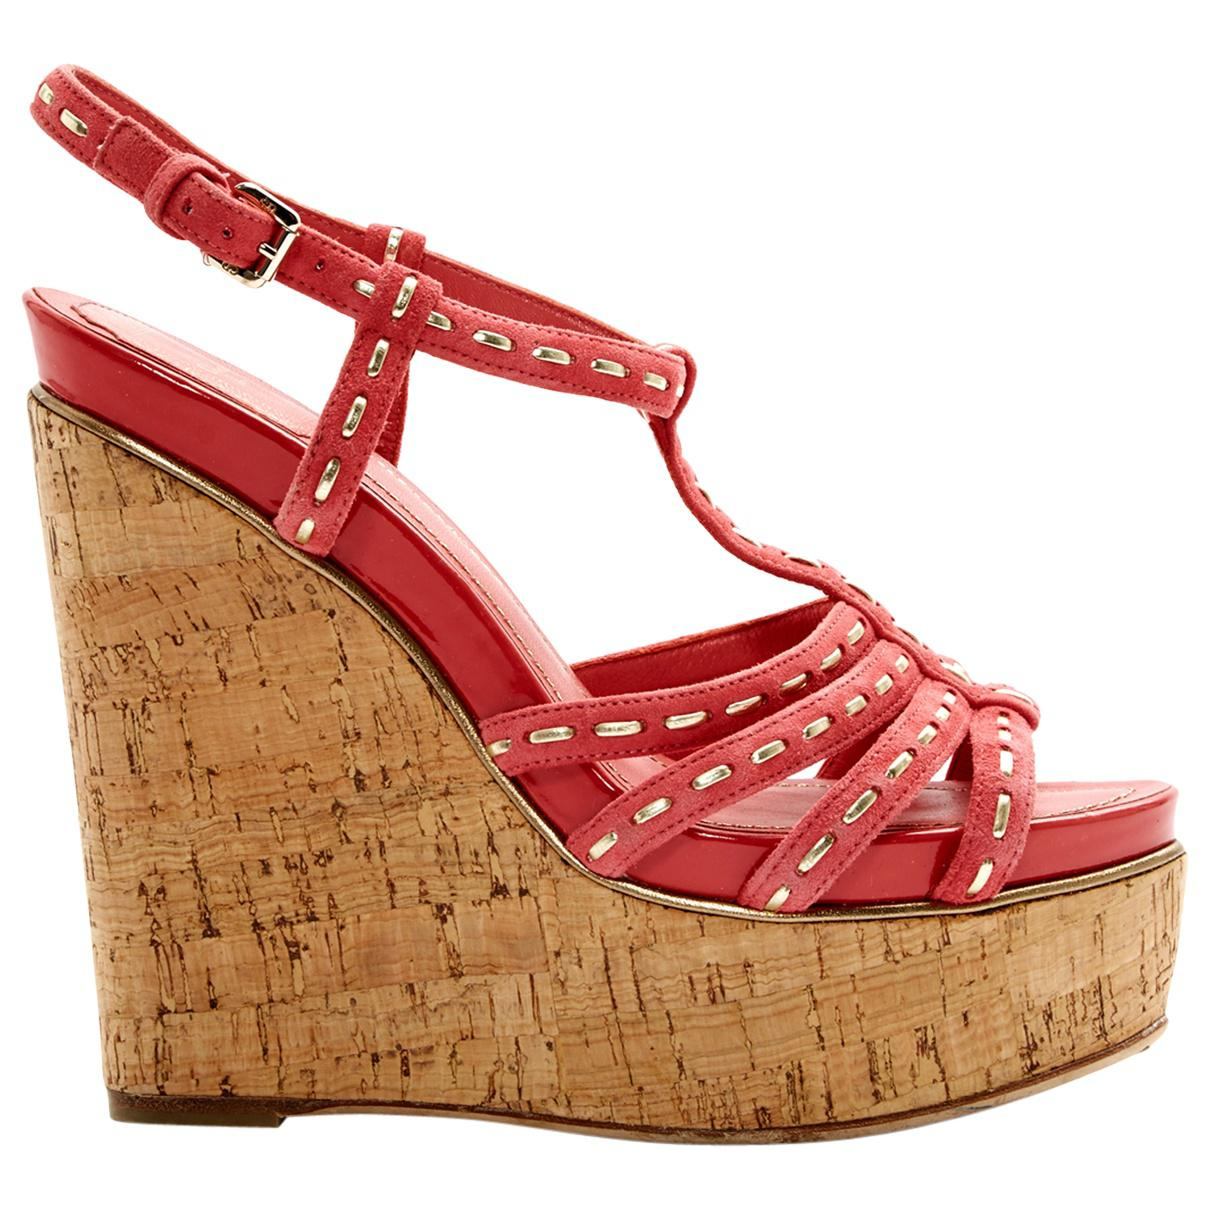 Pre-owned - Sandals Dior Fashionable For Sale hEw6Supcw